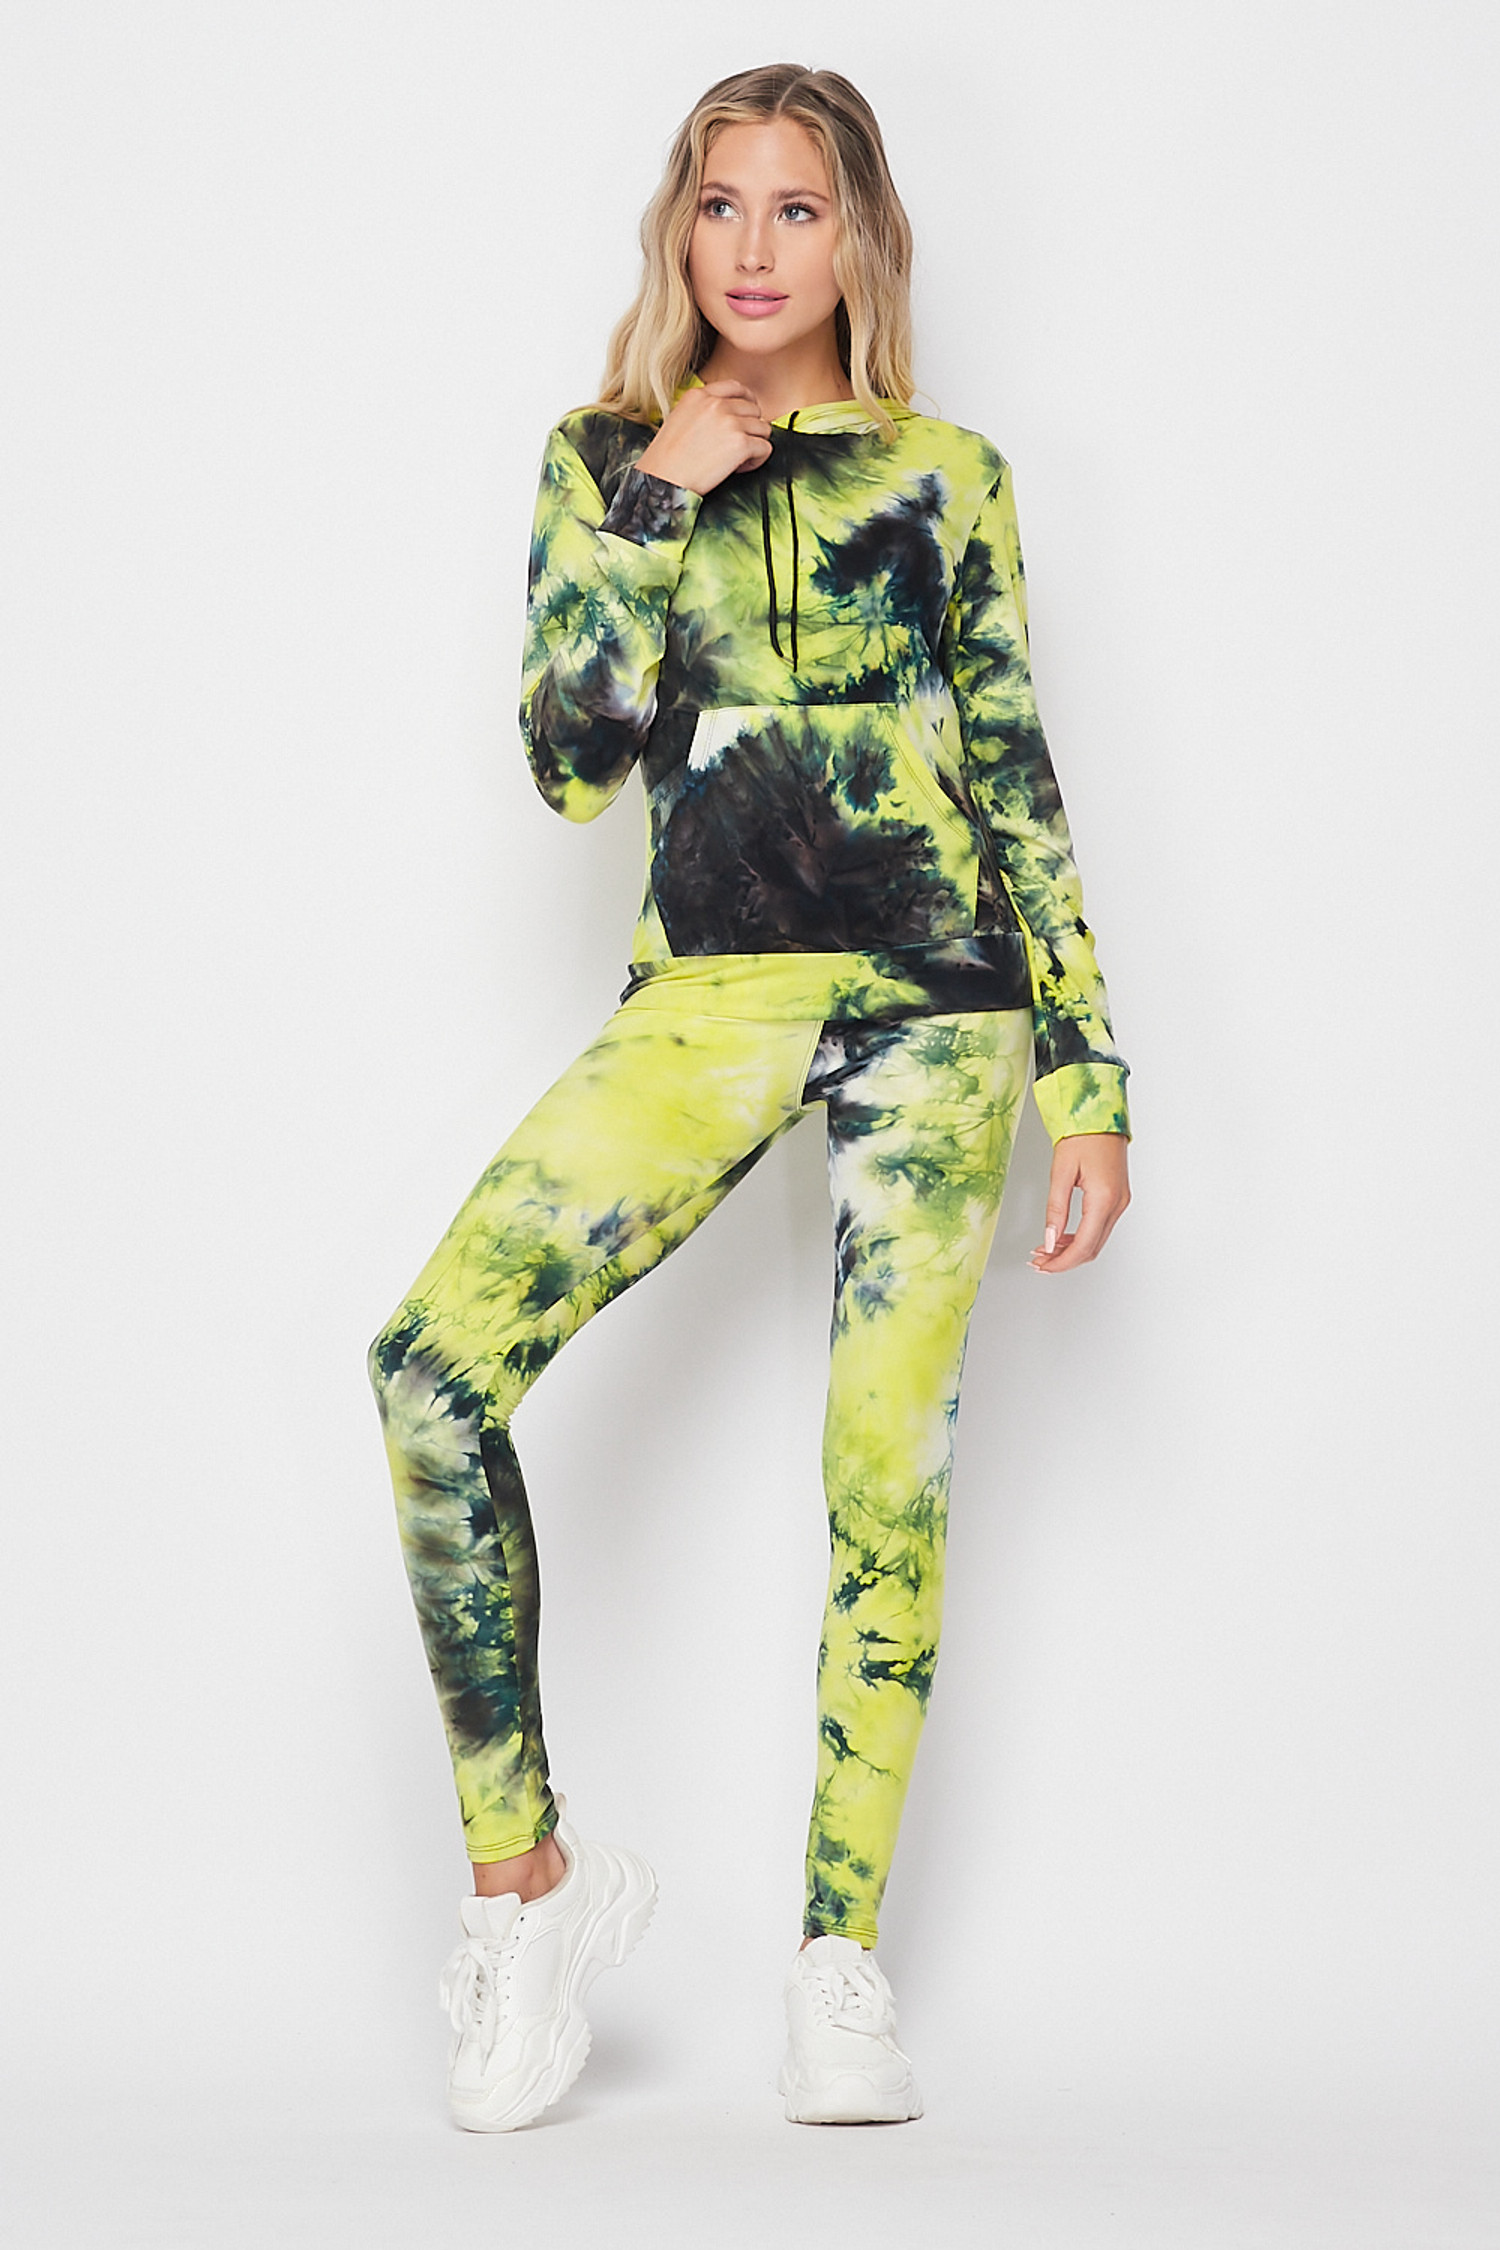 Front side of Yellow Tie Dye 2 Piece Leggings and Hooded Jacket Set